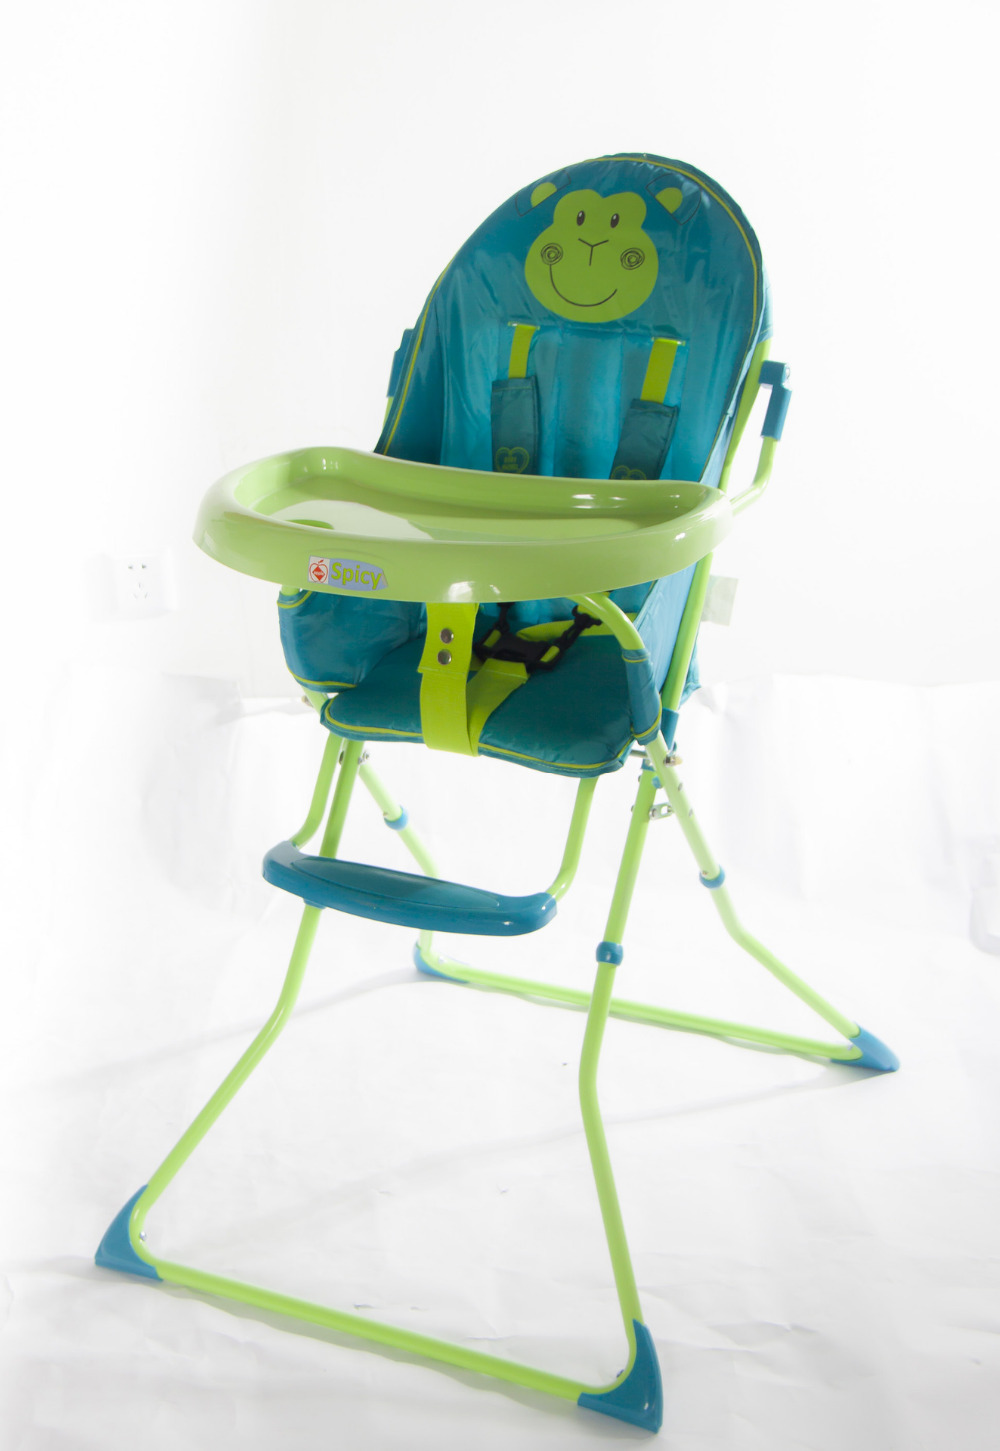 Get Quotations · Folding Portable Highchair Booster Seat Feeding High Chair for Baby Child Dining Eating Chair Multifunctional Children  sc 1 st  Alibaba & Cheap Chair Highchair find Chair Highchair deals on line at Alibaba.com